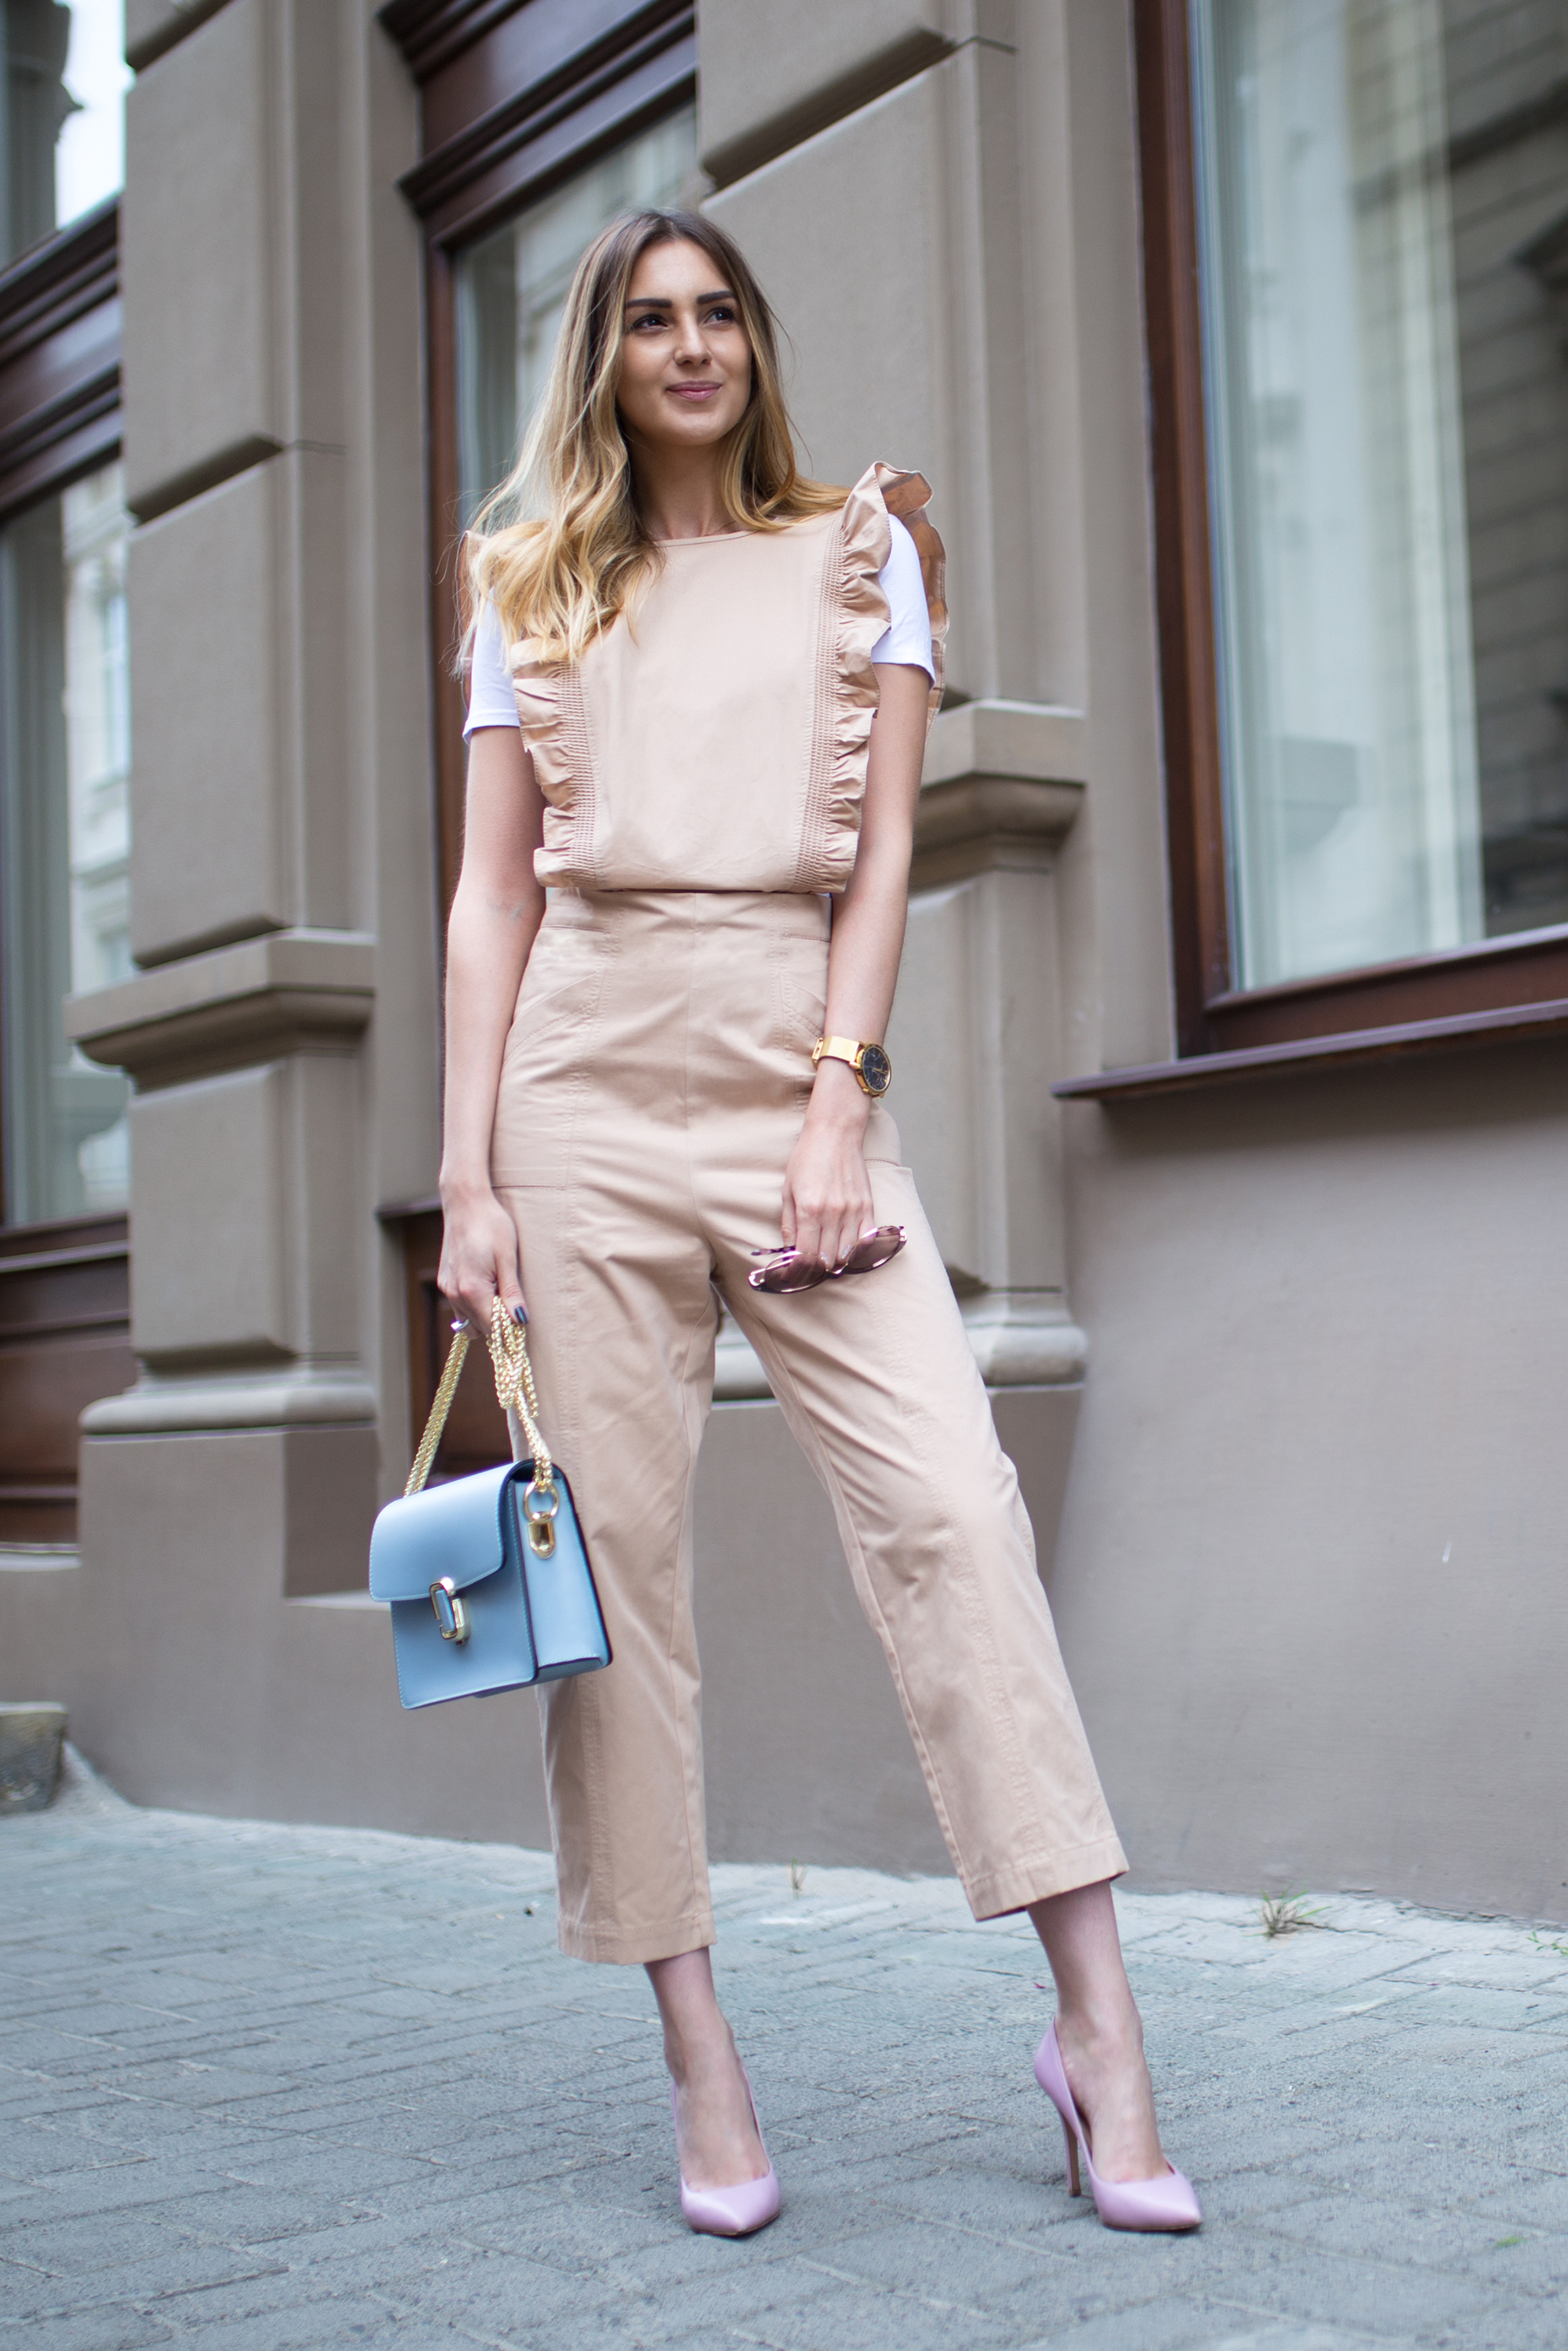 fashion-blogger-look-outfit-pink-pumps